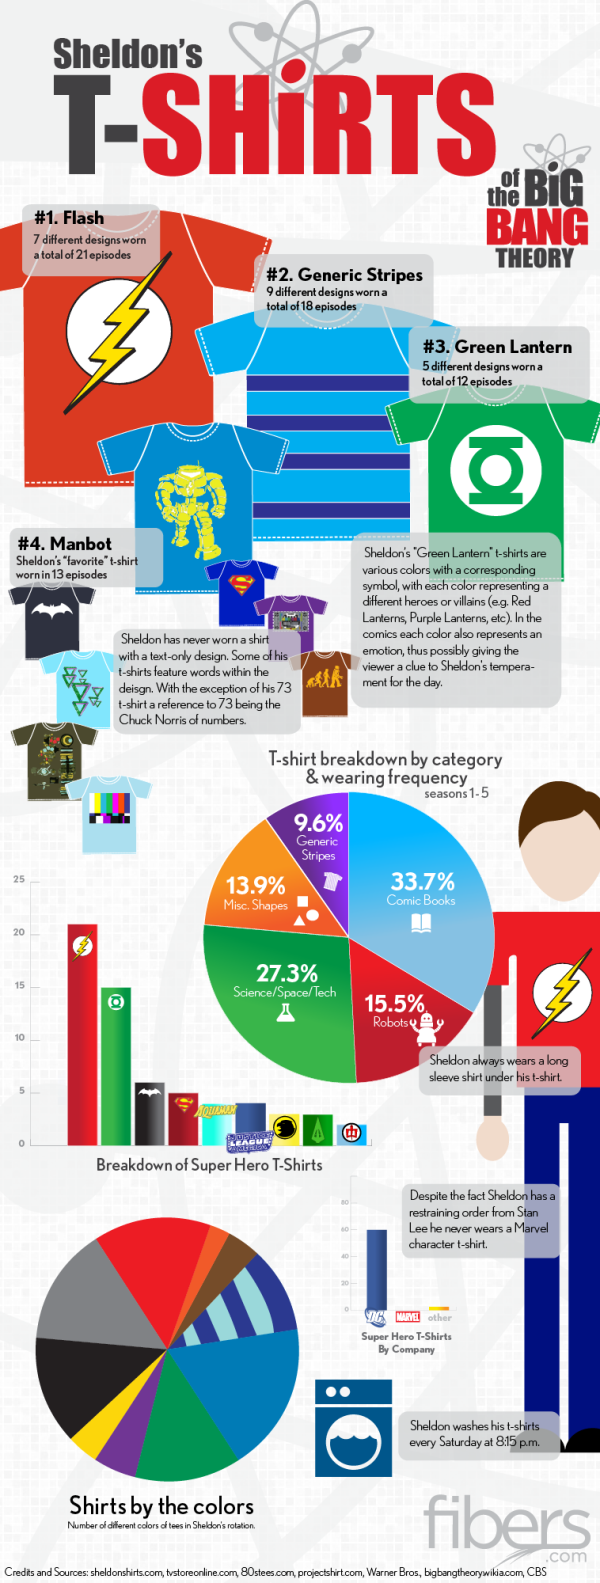 Sheldon's T-Shirts of The Big Bang Theory infographic